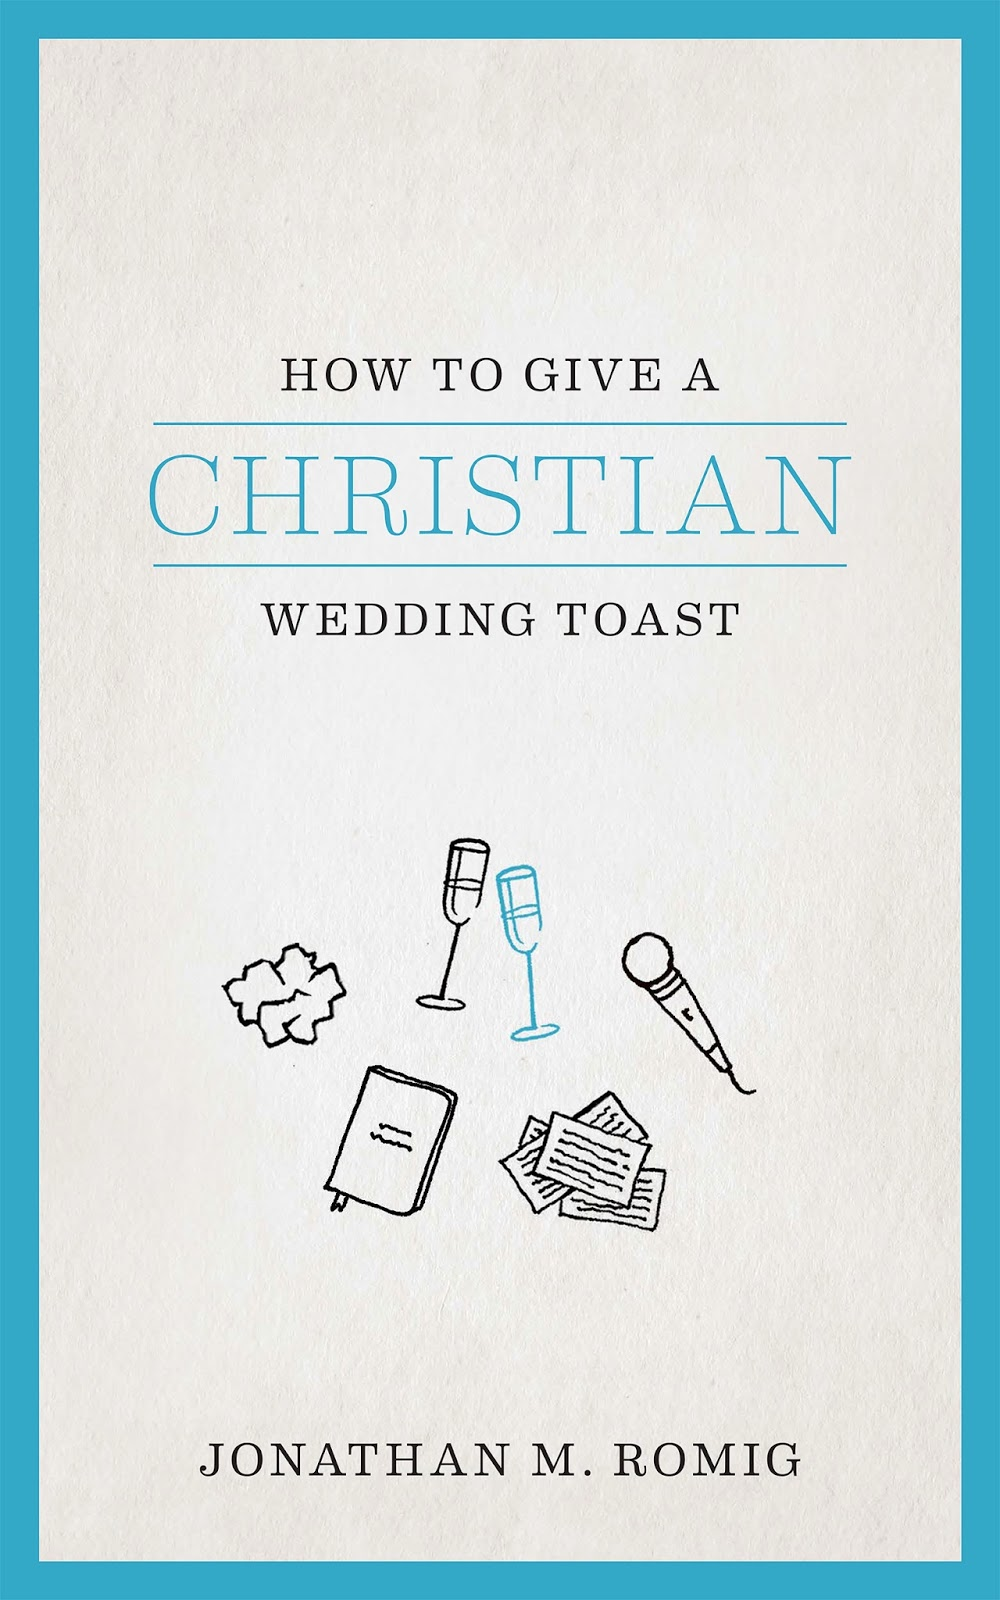 christian groom advice how to give a christian wedding